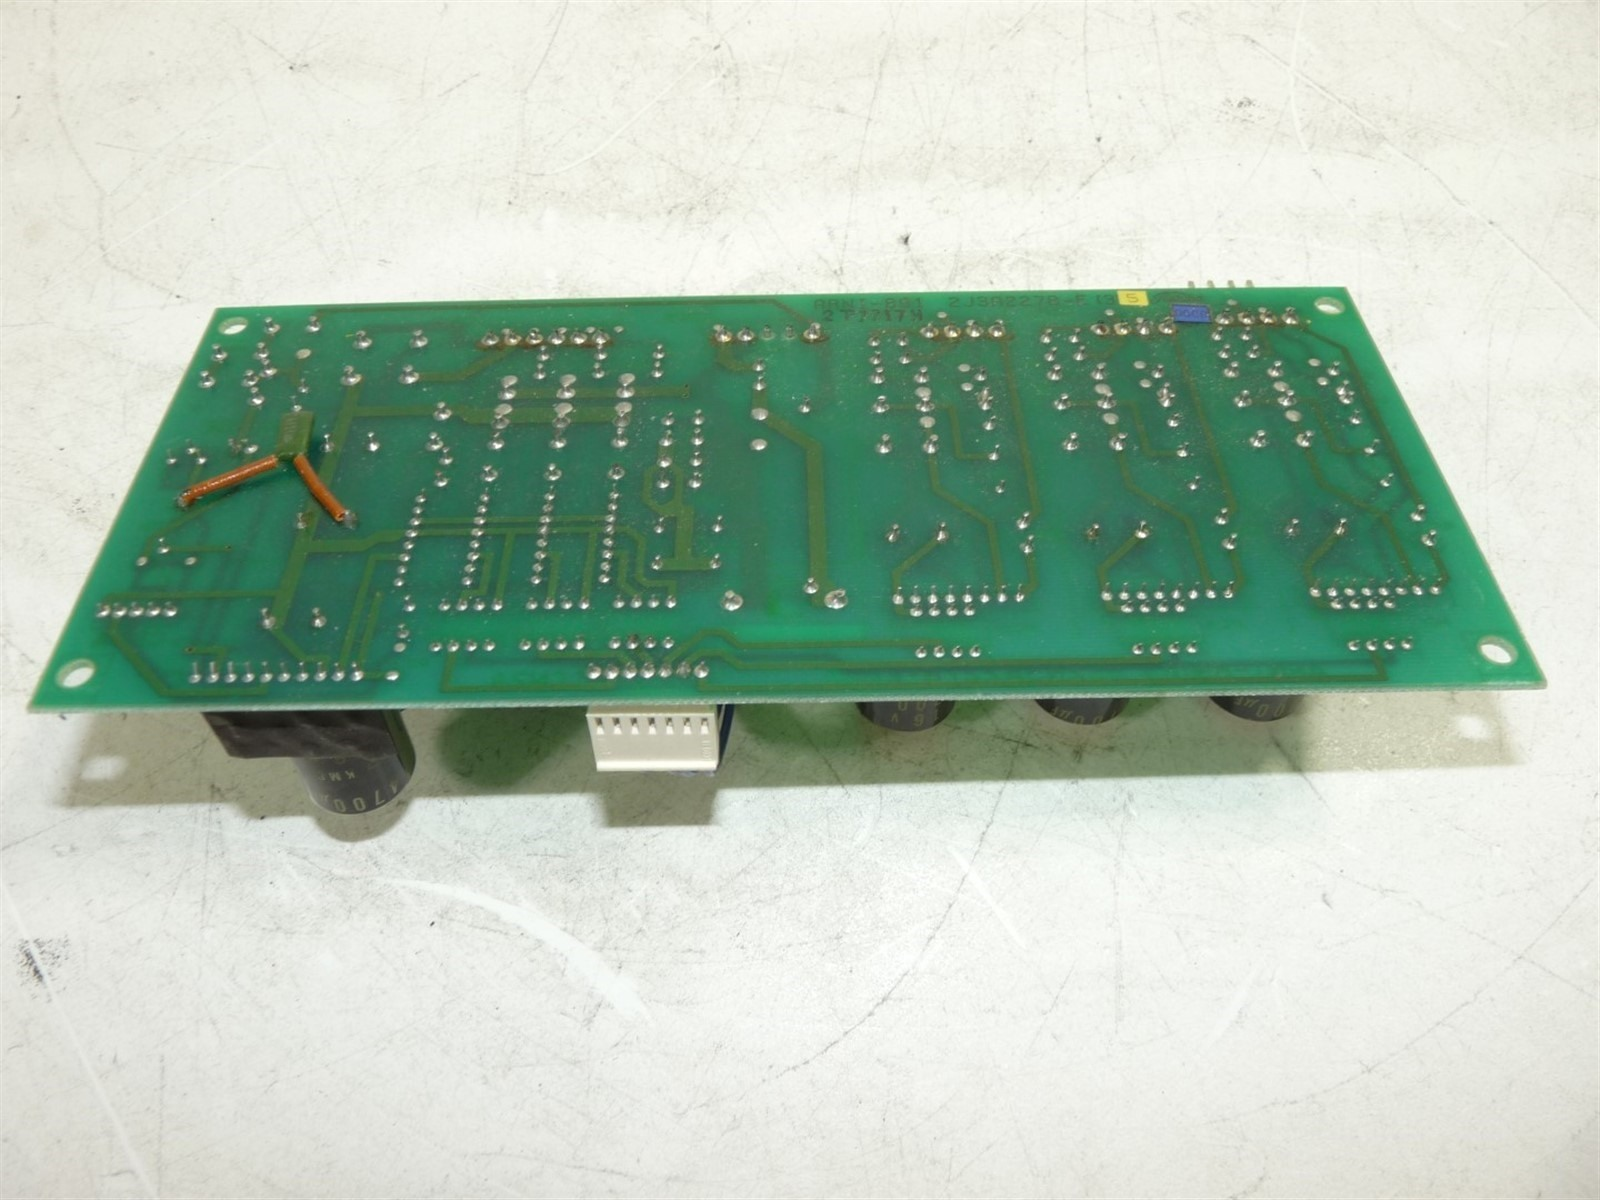 Details about Toshiba ARNI-891D 5-2N3A2278-E10 Drive Board Untested AS-IS